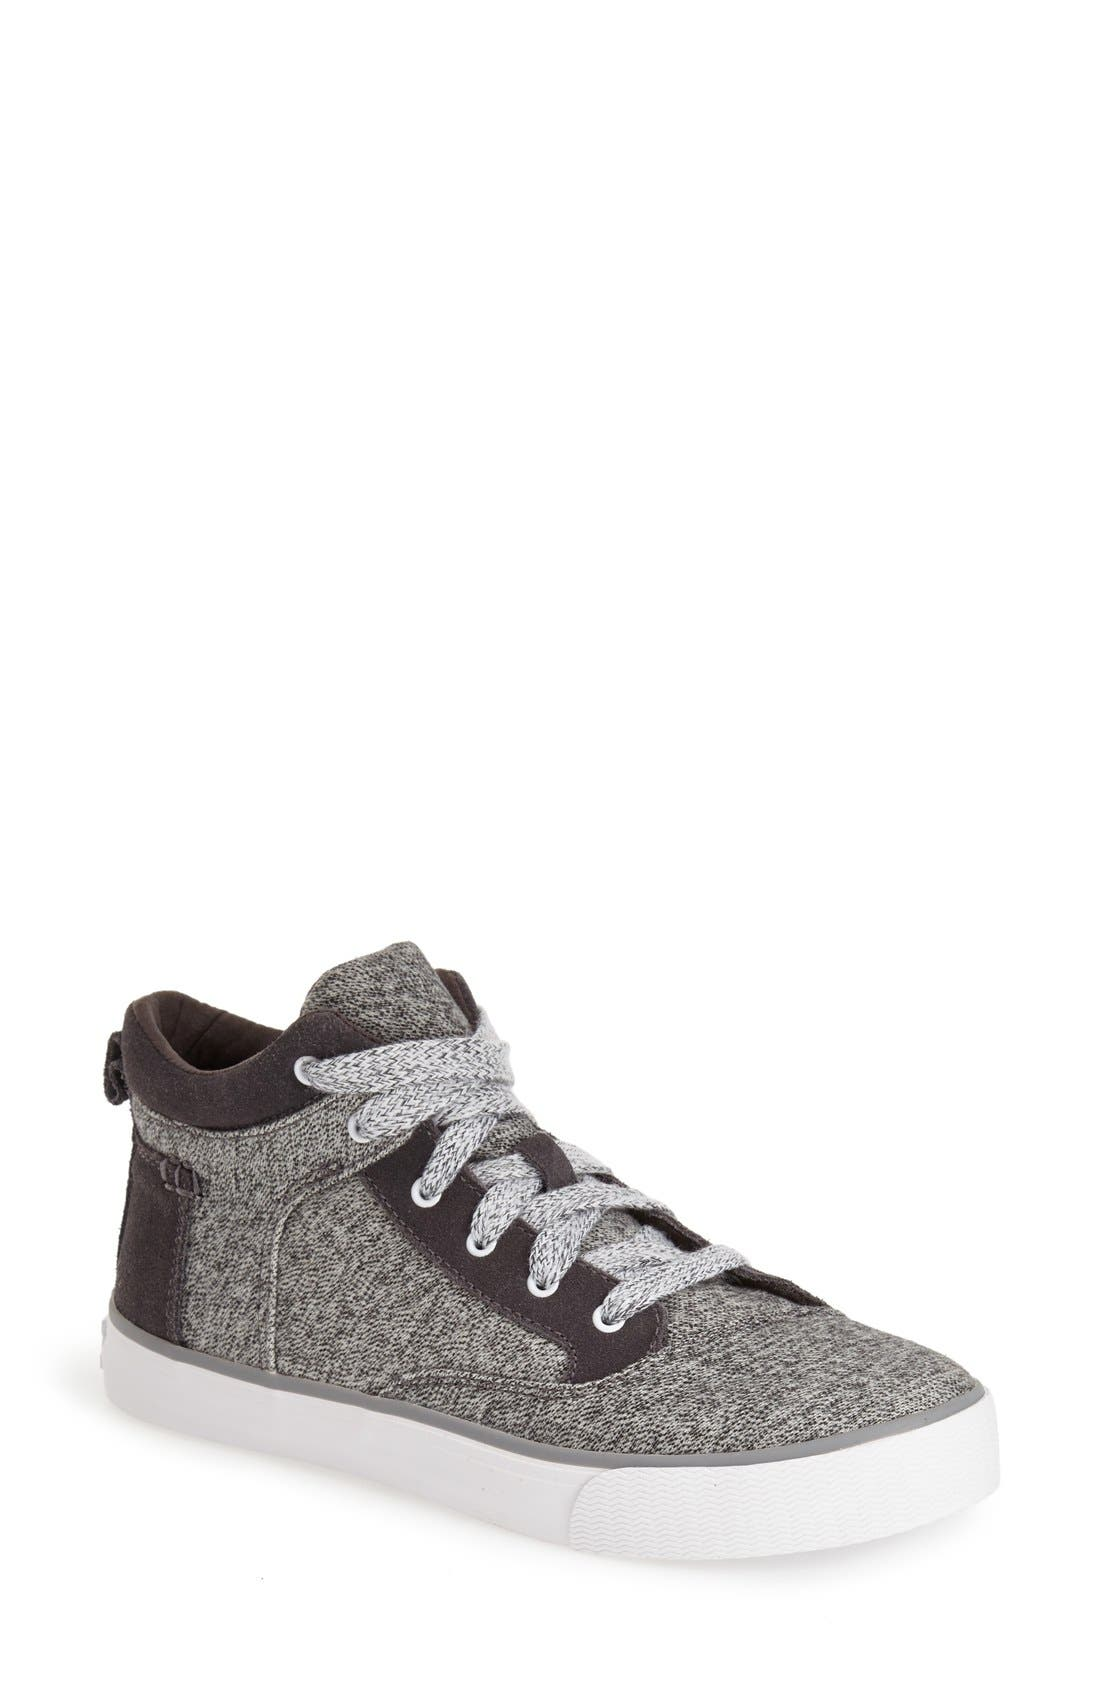 Alternate Image 1 Selected - TOMS 'Camila' High Top Sneaker (Women)